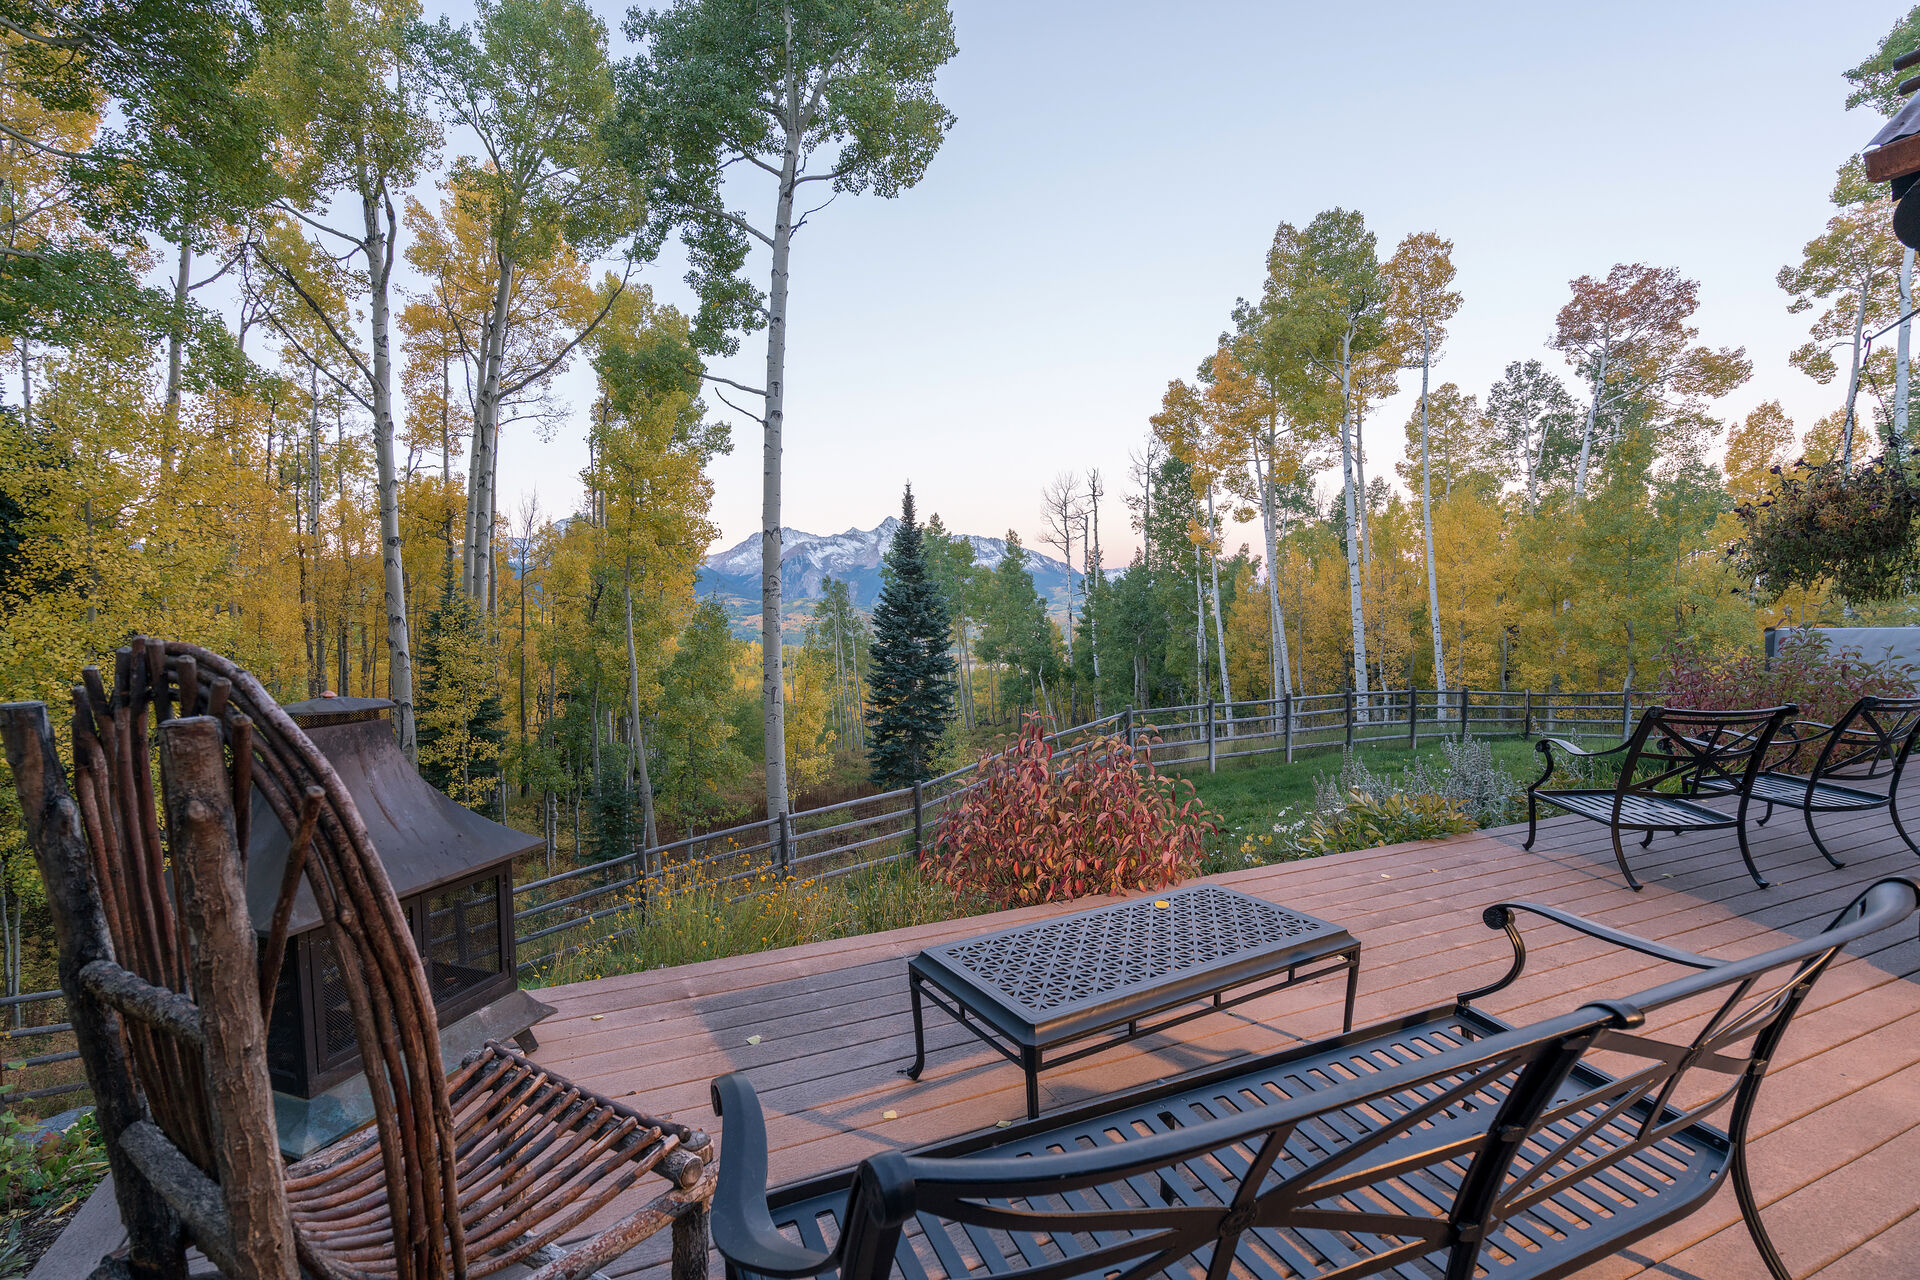 Views of the Mountains and Forest from the Spacious Deck with Ample Seating